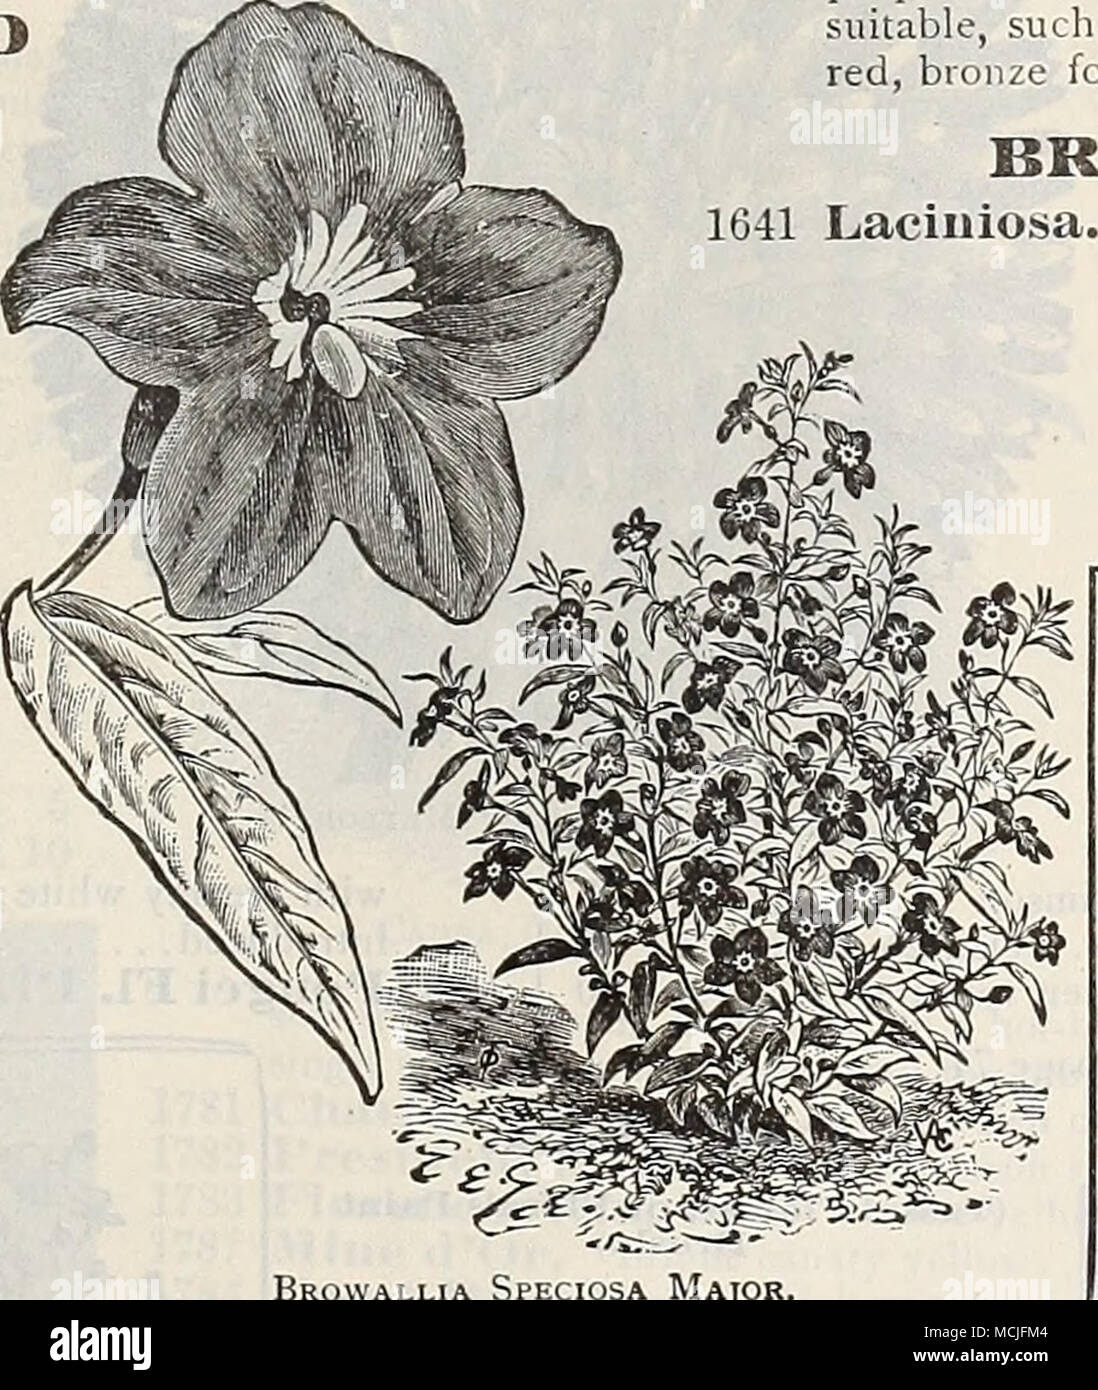 . BRYONOPSIS. 1641 Laciniosa. A beautiful annu.d climber of the gourd species, with ivy- like pale green foliage and showy fruit, first green striped w hite, turning, when ripe, to brighi scarlet striped white ; 10 feet. (See cut.) Brovvallia Spfxiosa Major. 0LD=FASH10NED FLOWERS. We offer collections of seed of both annual and per- ennial old-fashioned flowers on page 58. For index of Common or English names of Flowers, see page 100. ORNAMENTAI^-I^EAVED BEGONIA. per pkt 1566 Hex Hybrids. Beautiful varieties, with handsome variegated foliage. Choice mixed. (See cut.)  25 BRO'WAEEIA (Amethyst) - Stock Image